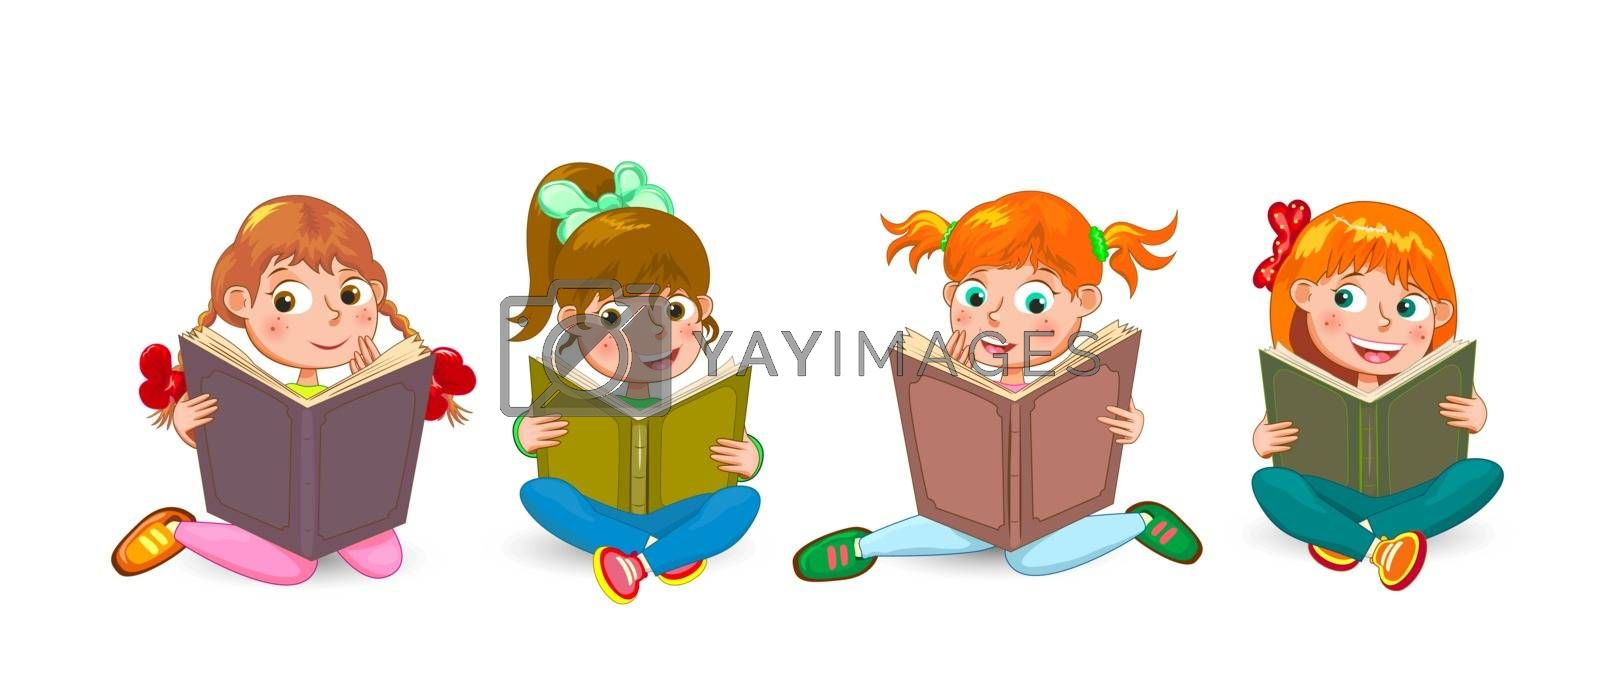 The girls are sitting with books in their hands. Girls with books on a white background.